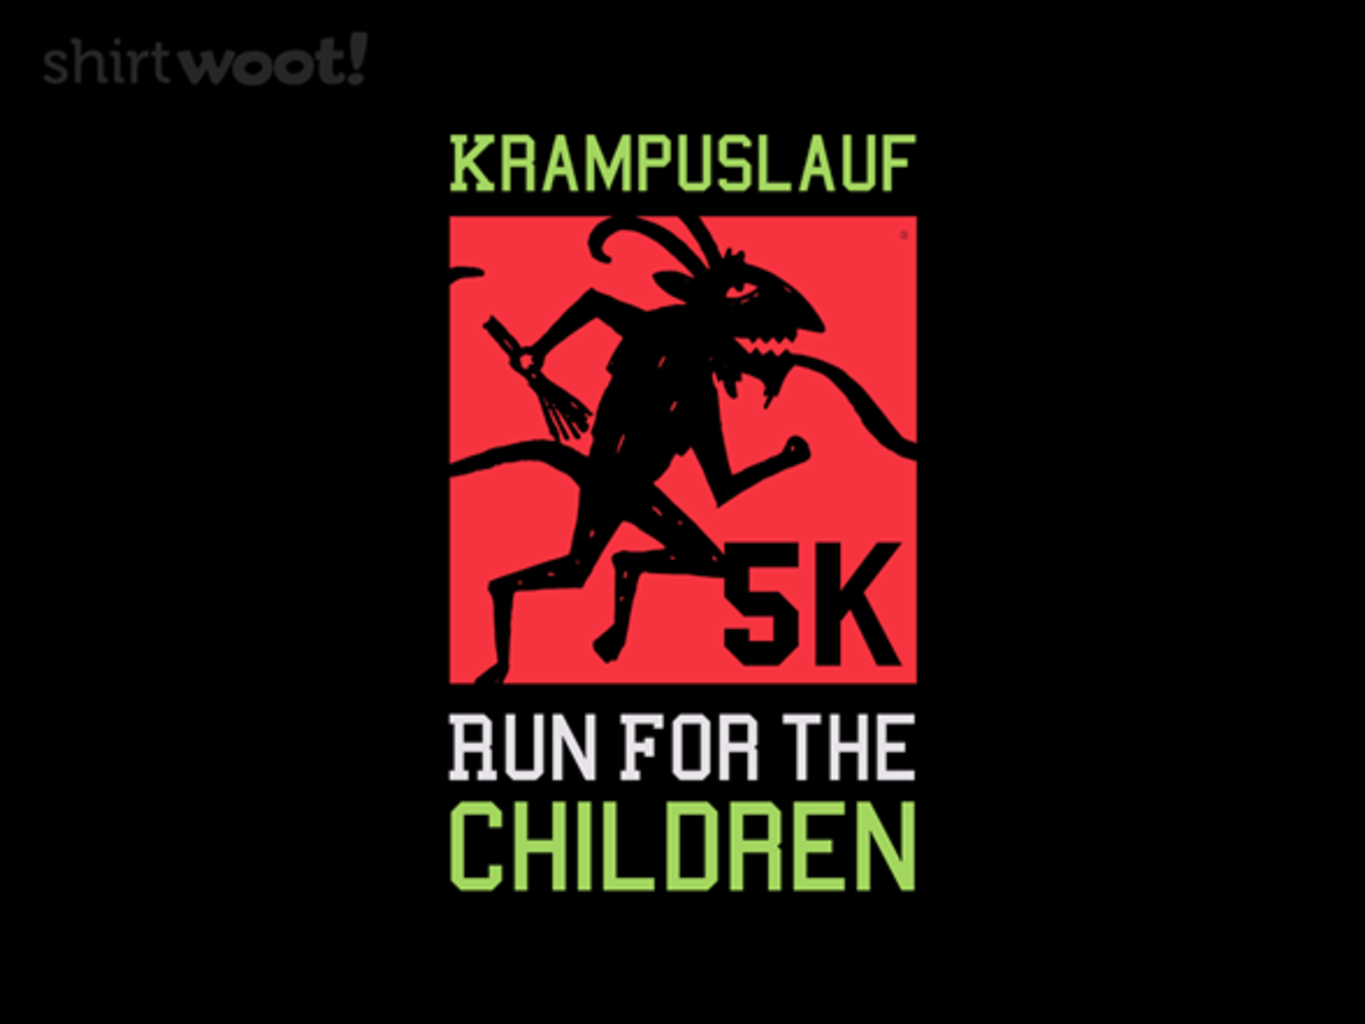 Woot!: Run for The Children - $8.00 + $5 standard shipping